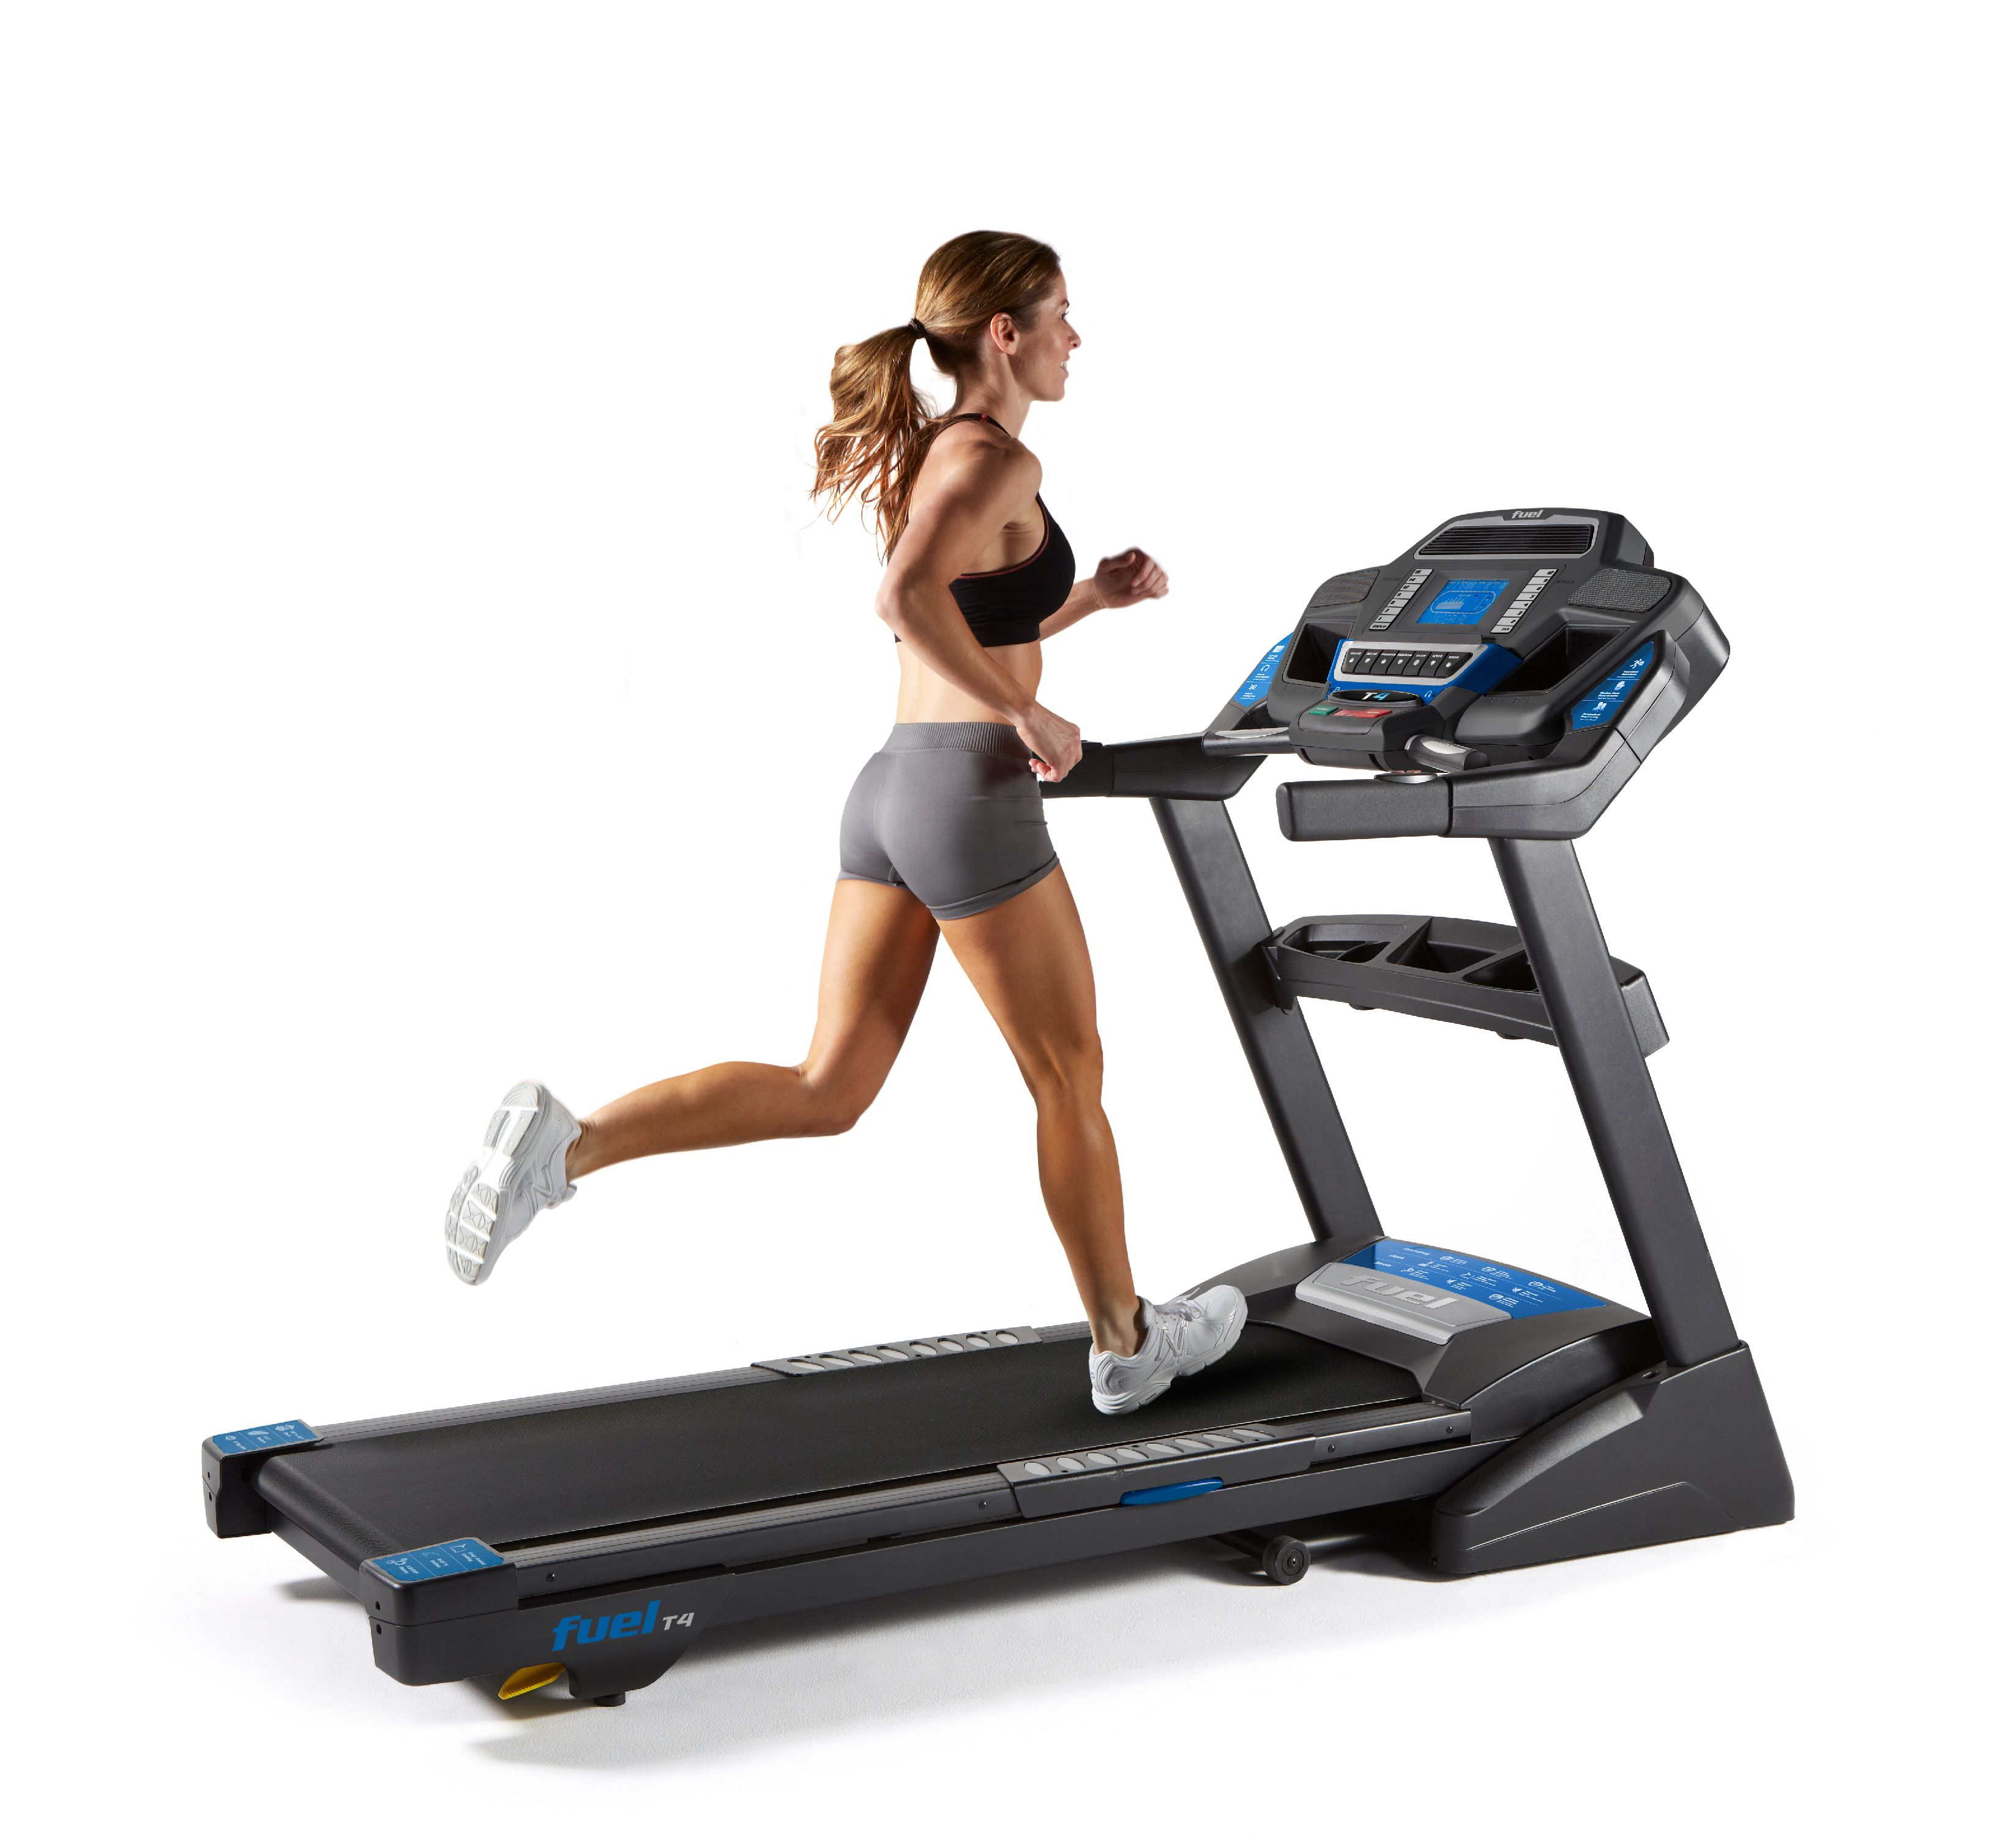 Fuel T4 by Sole Treadmills with Warranty, 15 Levels of Incline & 3.0 HP Motor